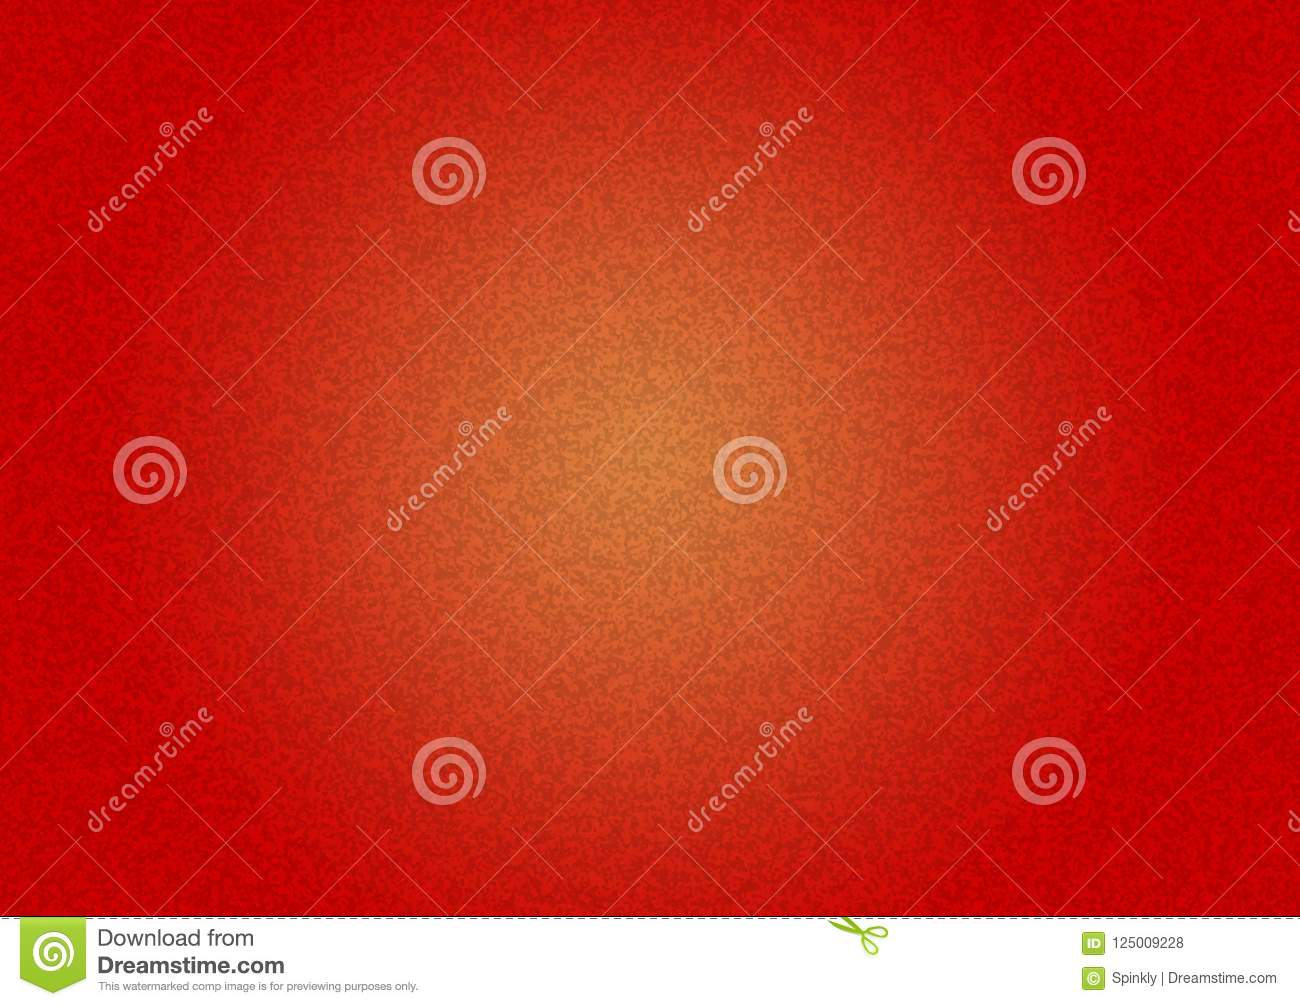 Plain red textured background with yellow gradient